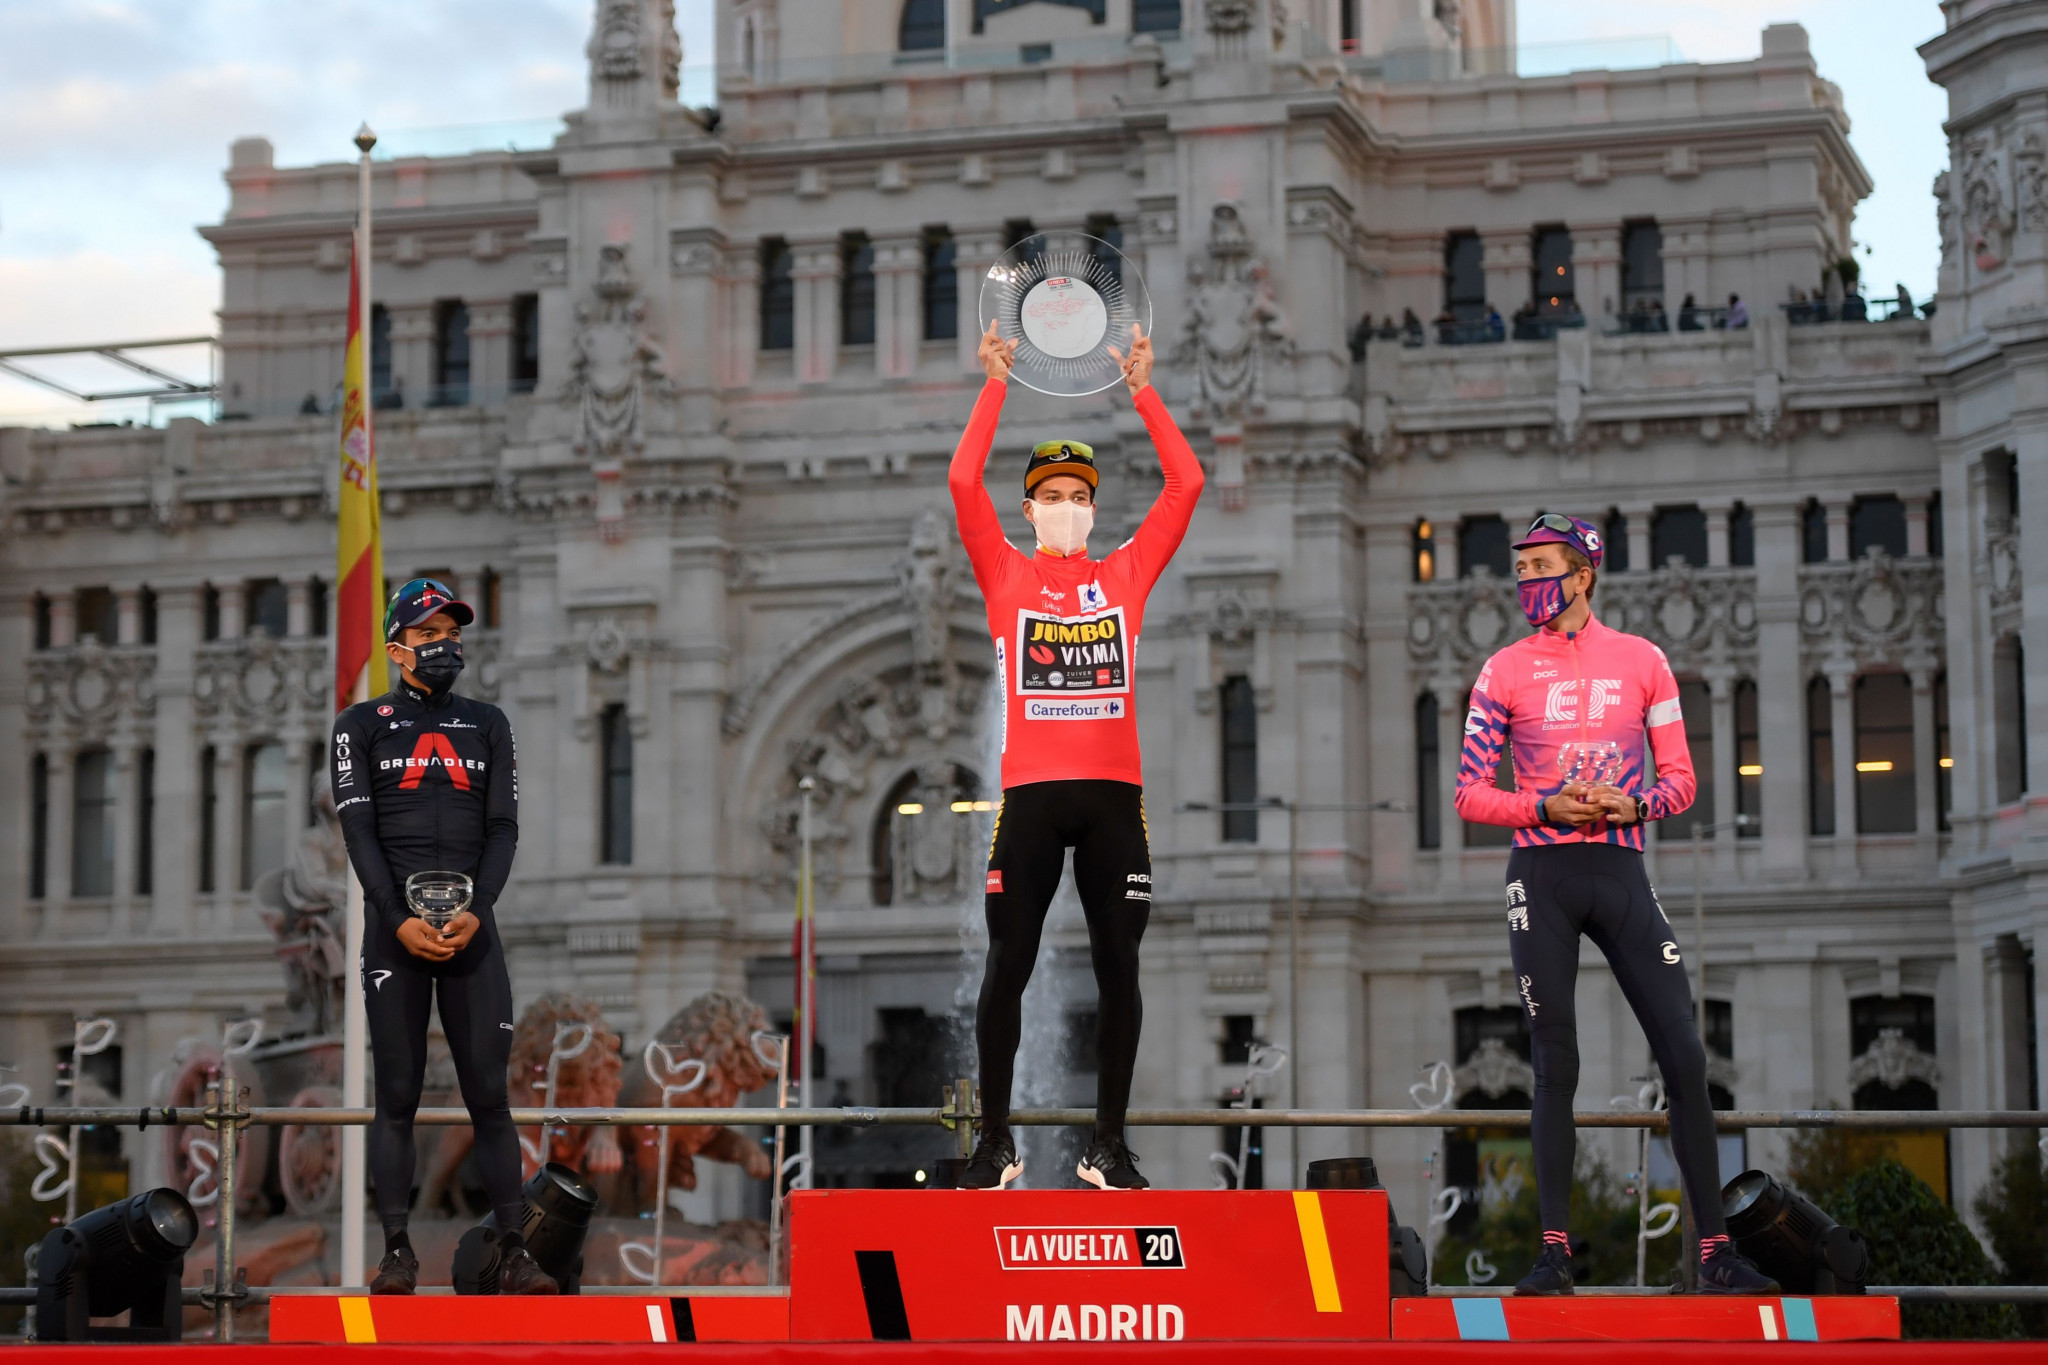 La Vuelta is returning to its 21-stage format and regular calendar date, after last year's shortened and delayed tour was won by Slovenian Primož Roglič ©Getty Images